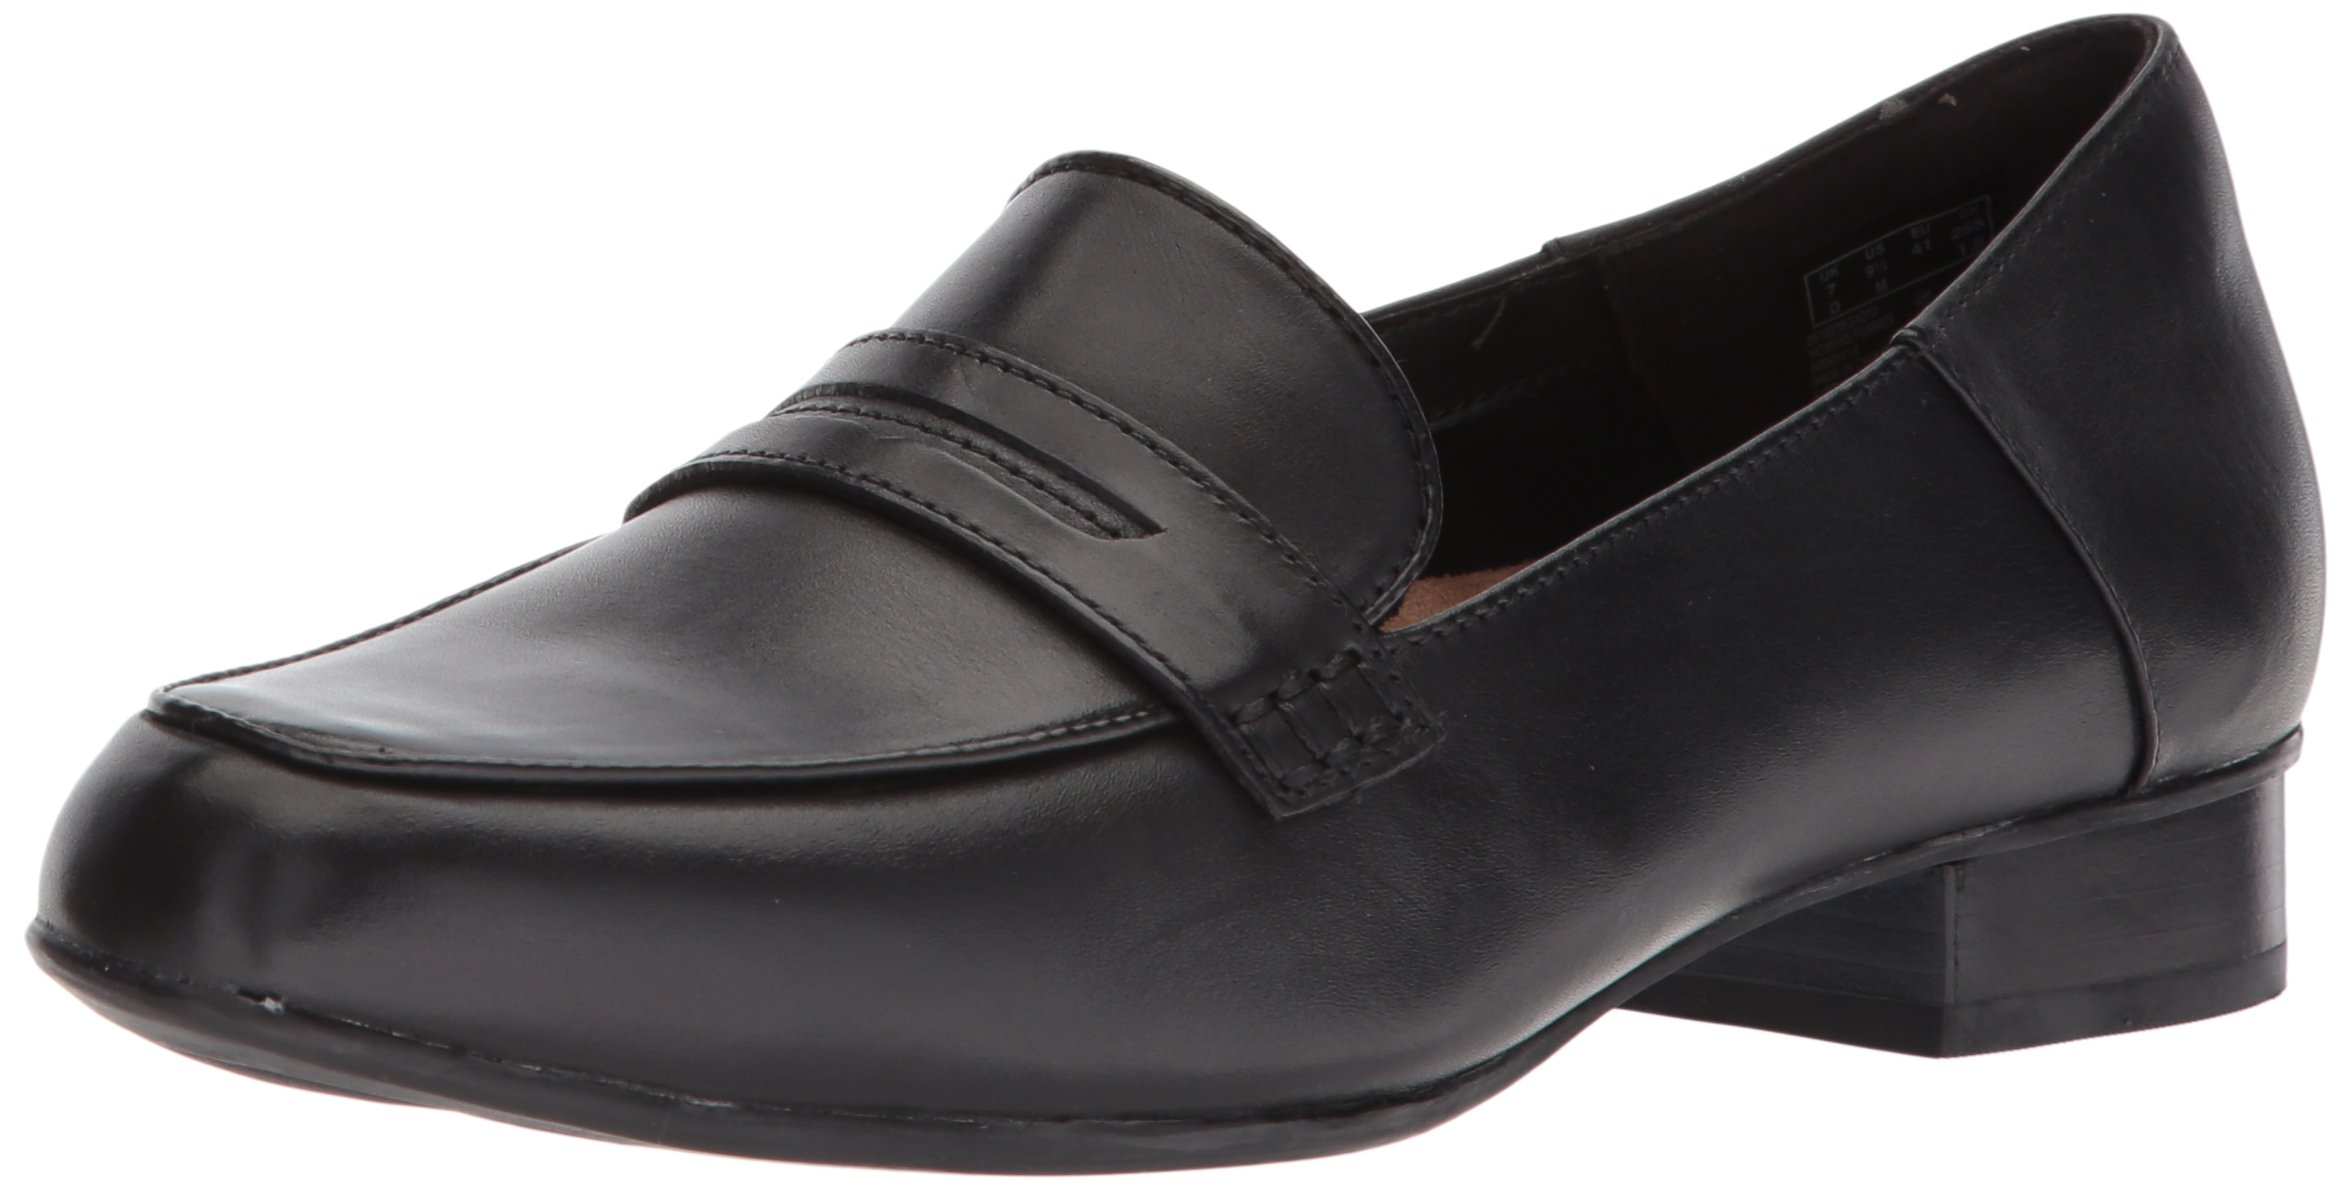 CLARKS Women's Keesha Cora Penny Loafer, Black Leather, 12 Medium US